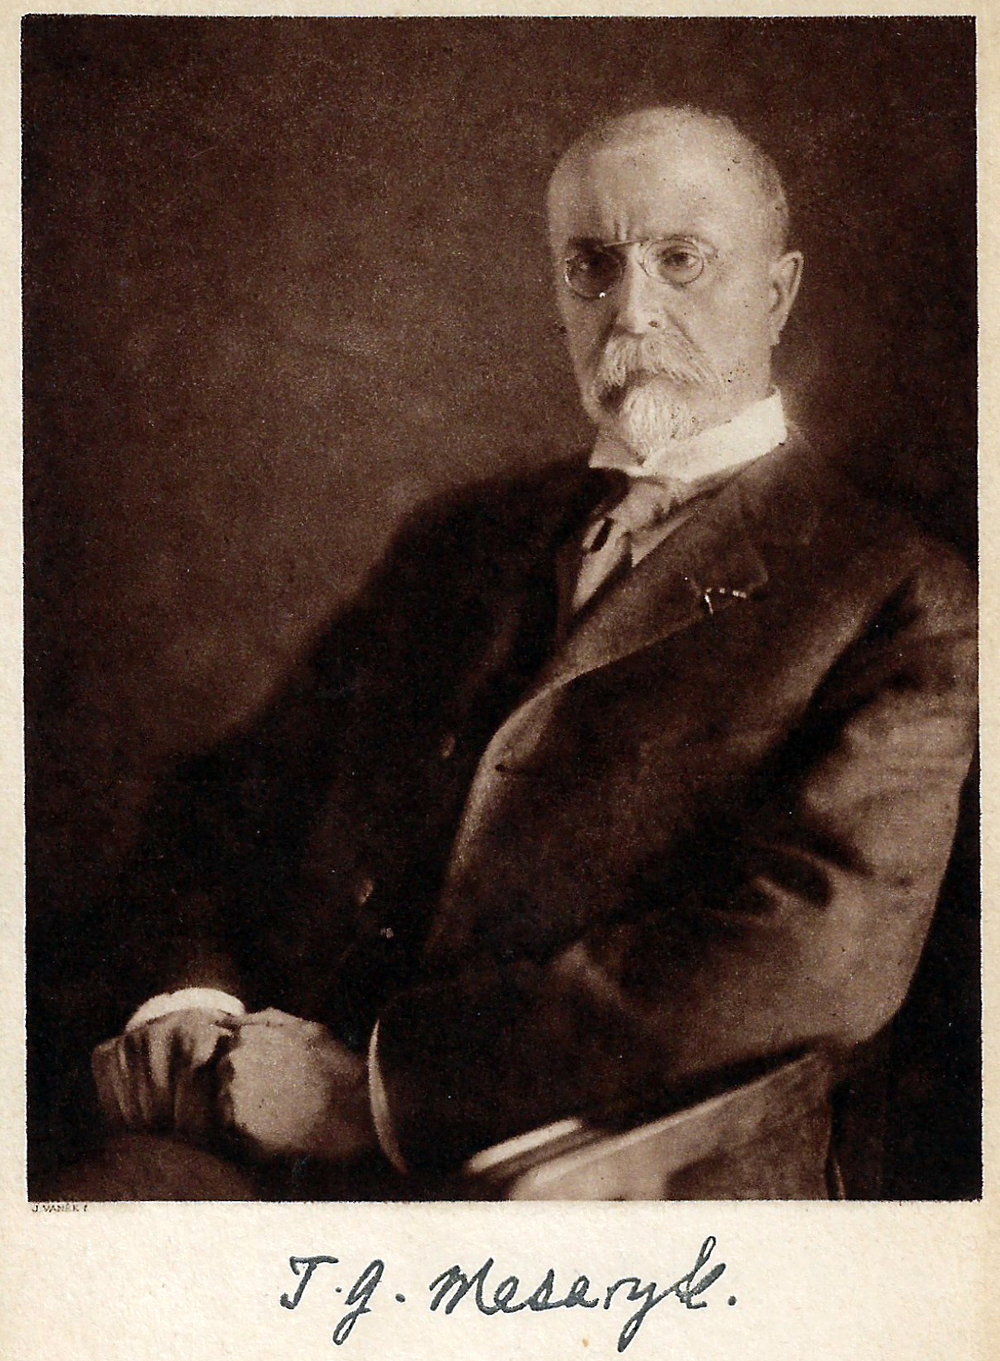 Tomas Masaryk led the effort to recruit Slovaks and Czechs into an army that would fight alongside America and it allies in the World War. After the war he became the first president of the new nation of Czecho-Slovakia.